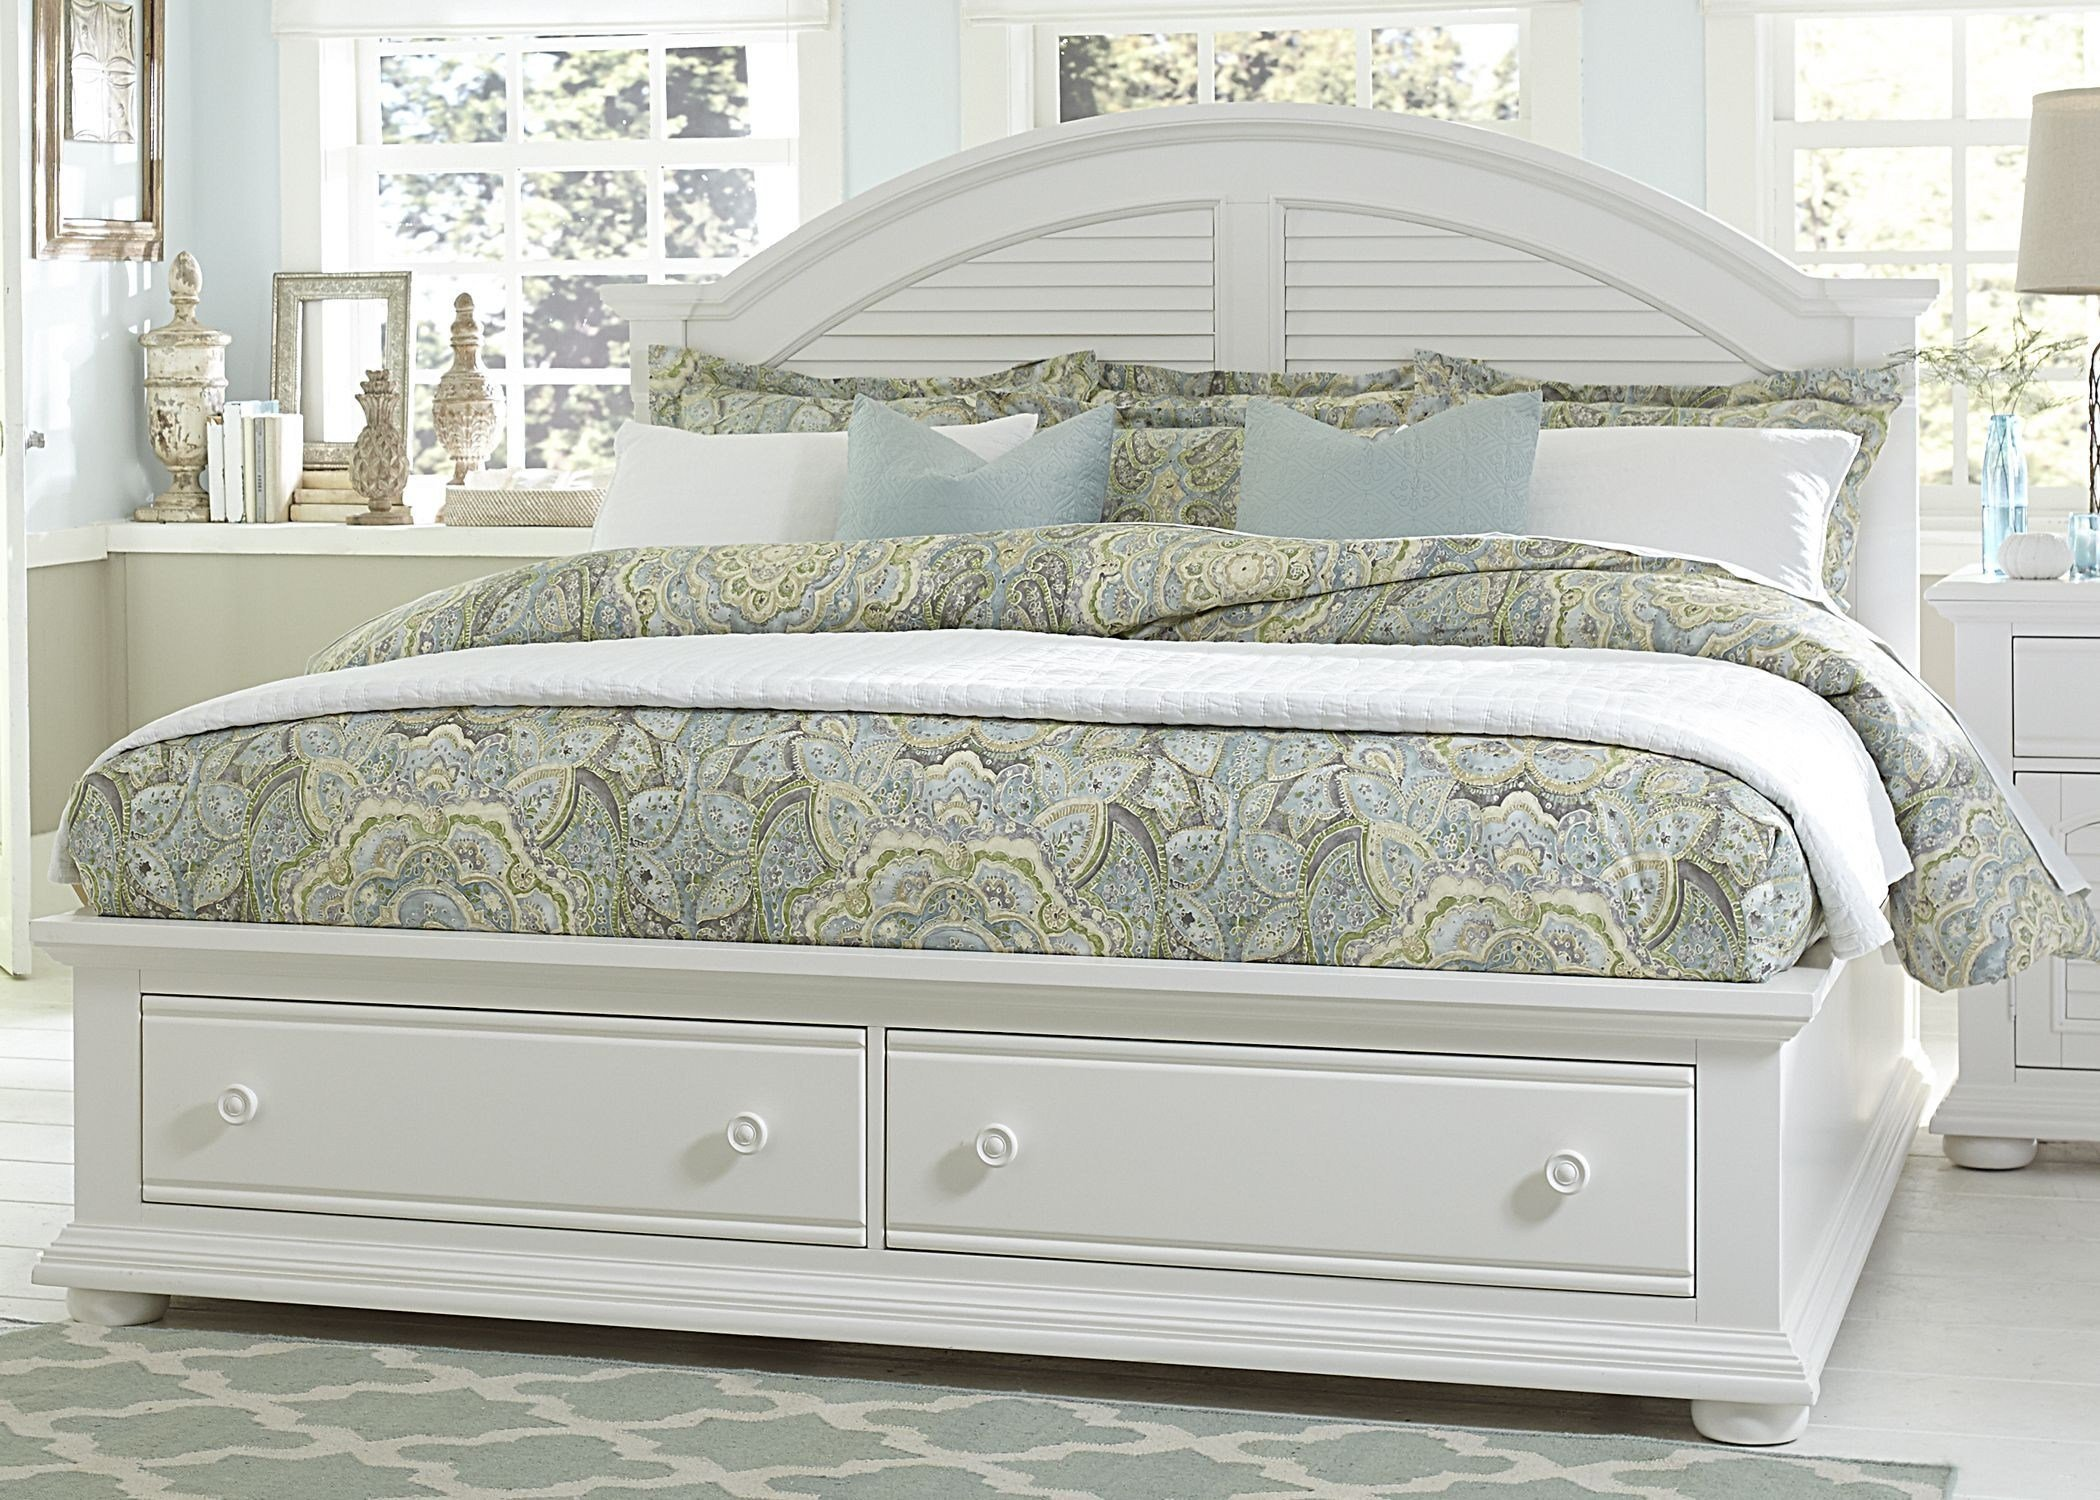 Best Summer House Oyster White Queen Panel Storage Bed From With Pictures